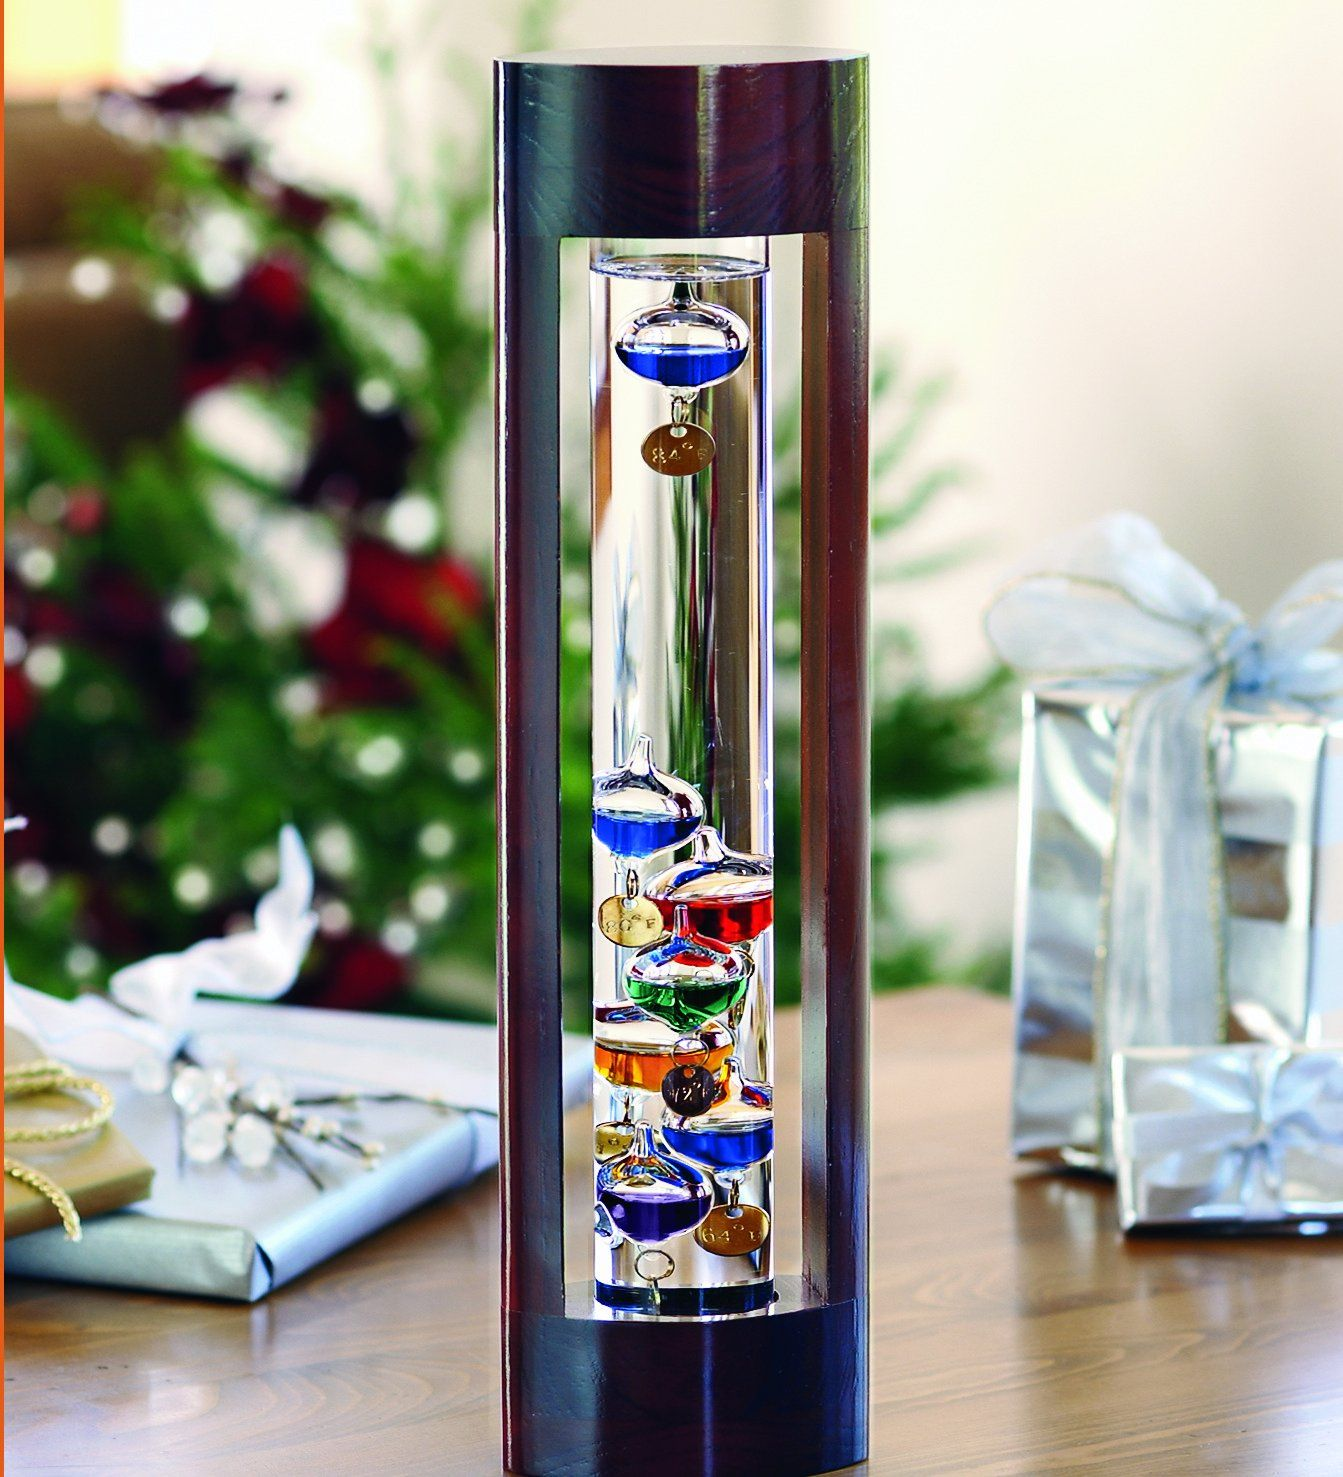 Amazon.com : Wind & Weather Galileo Thermometer with Cherry Finish ...